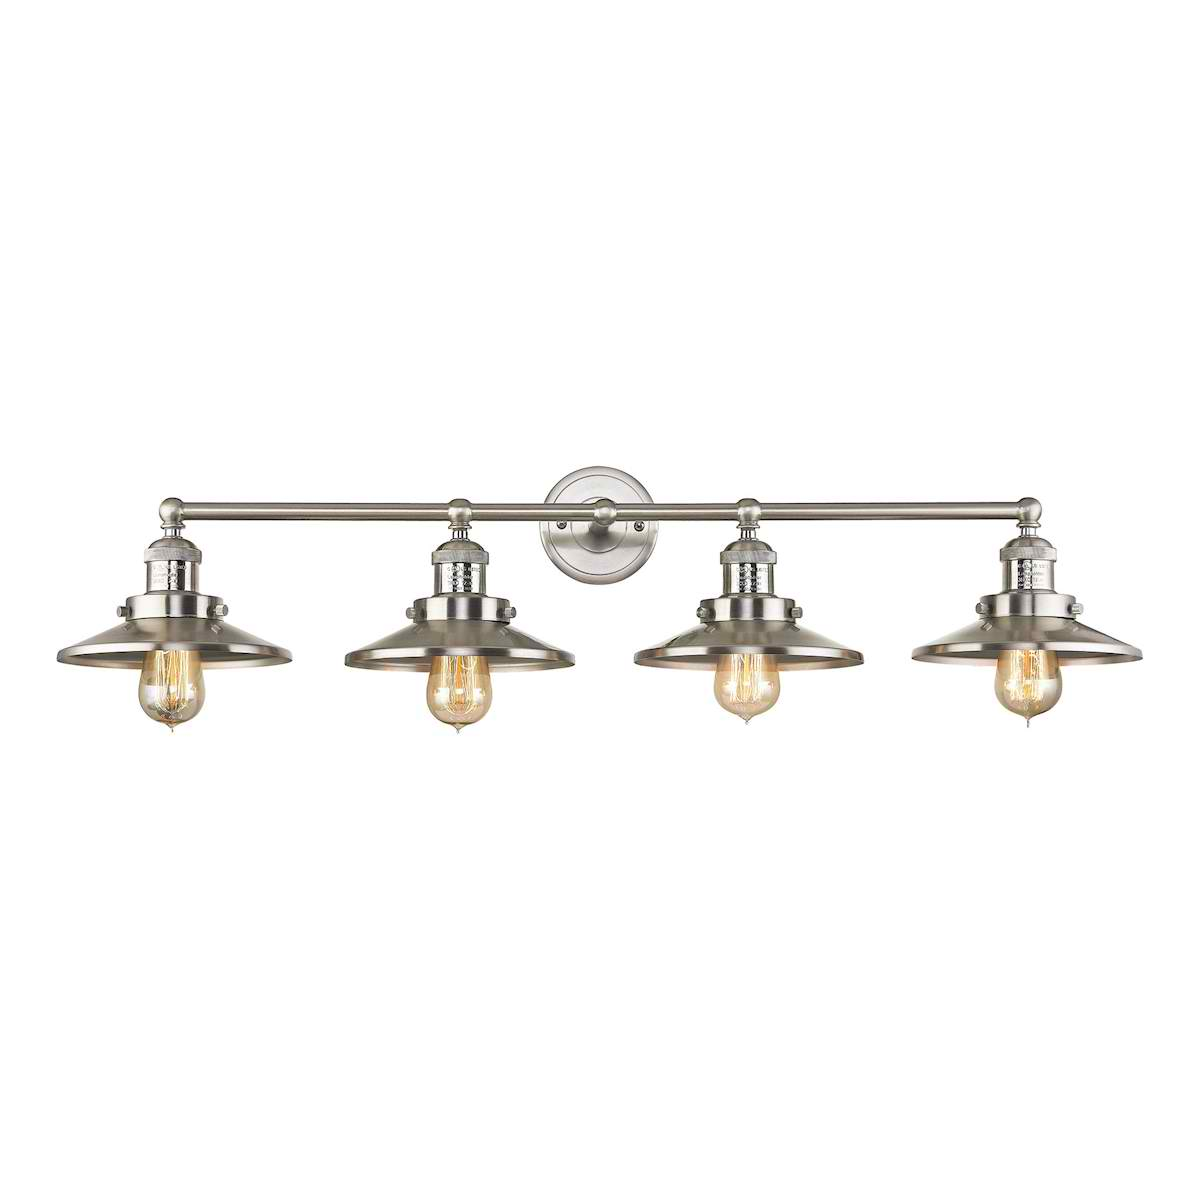 English Pub 4 Light Vanity in Satin Nickel